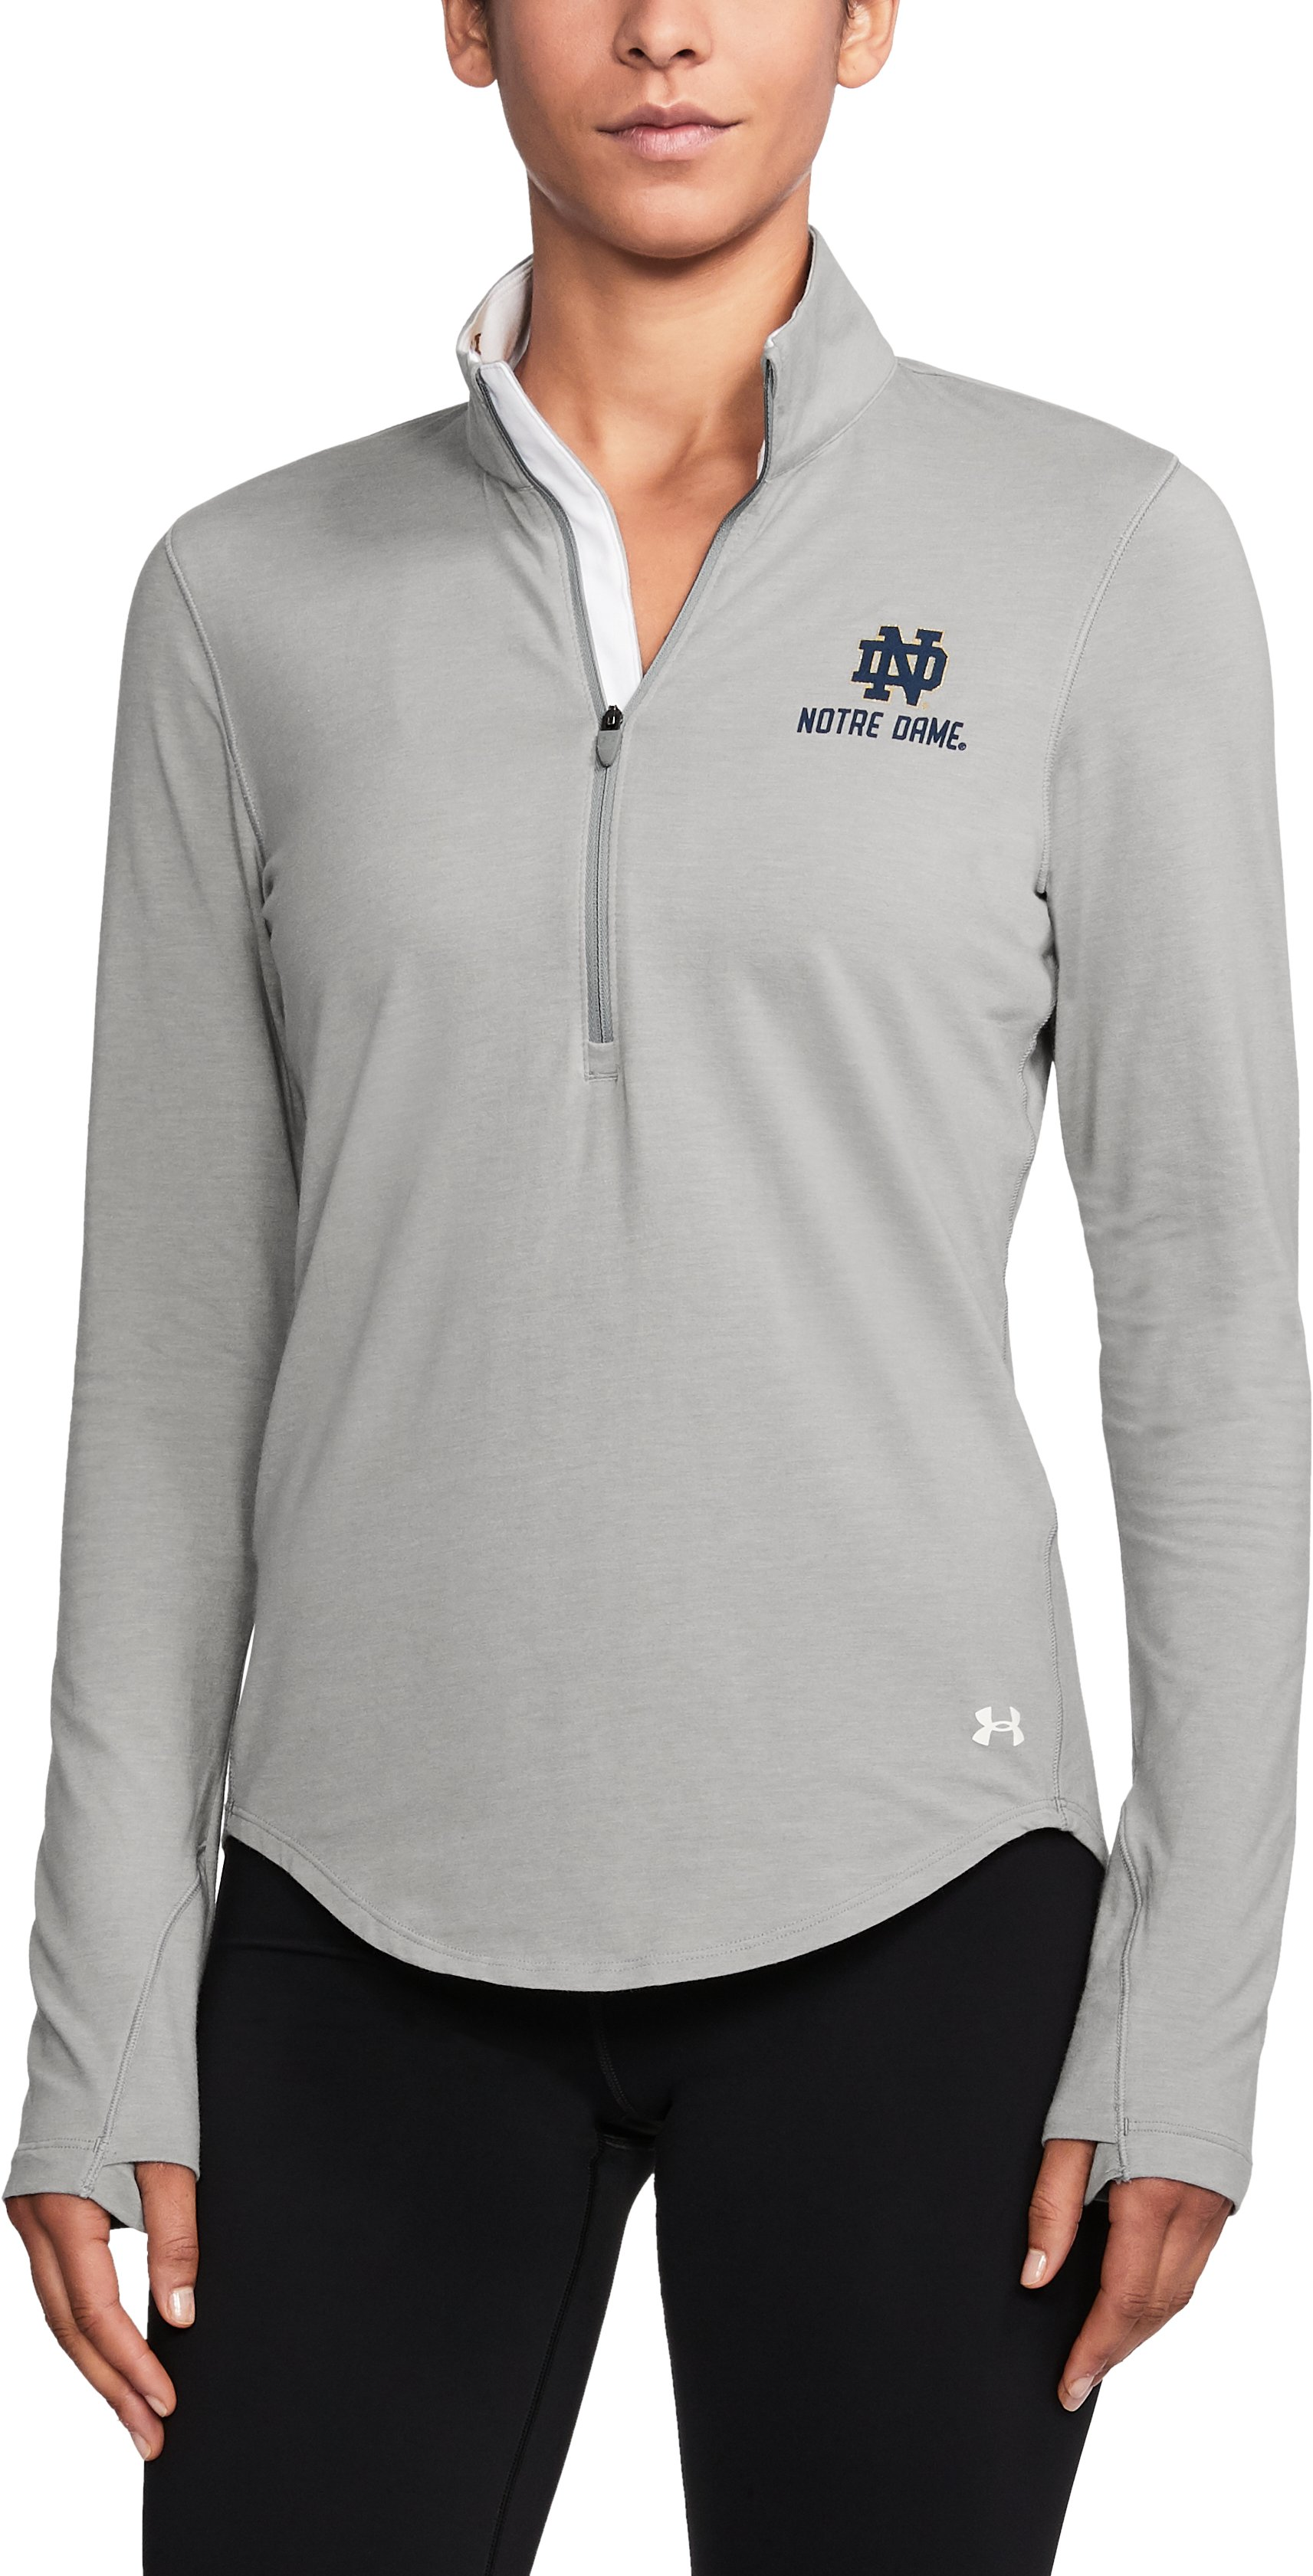 Women's Notre Dame Charged Cotton® ¼ Zip, True Gray Heather